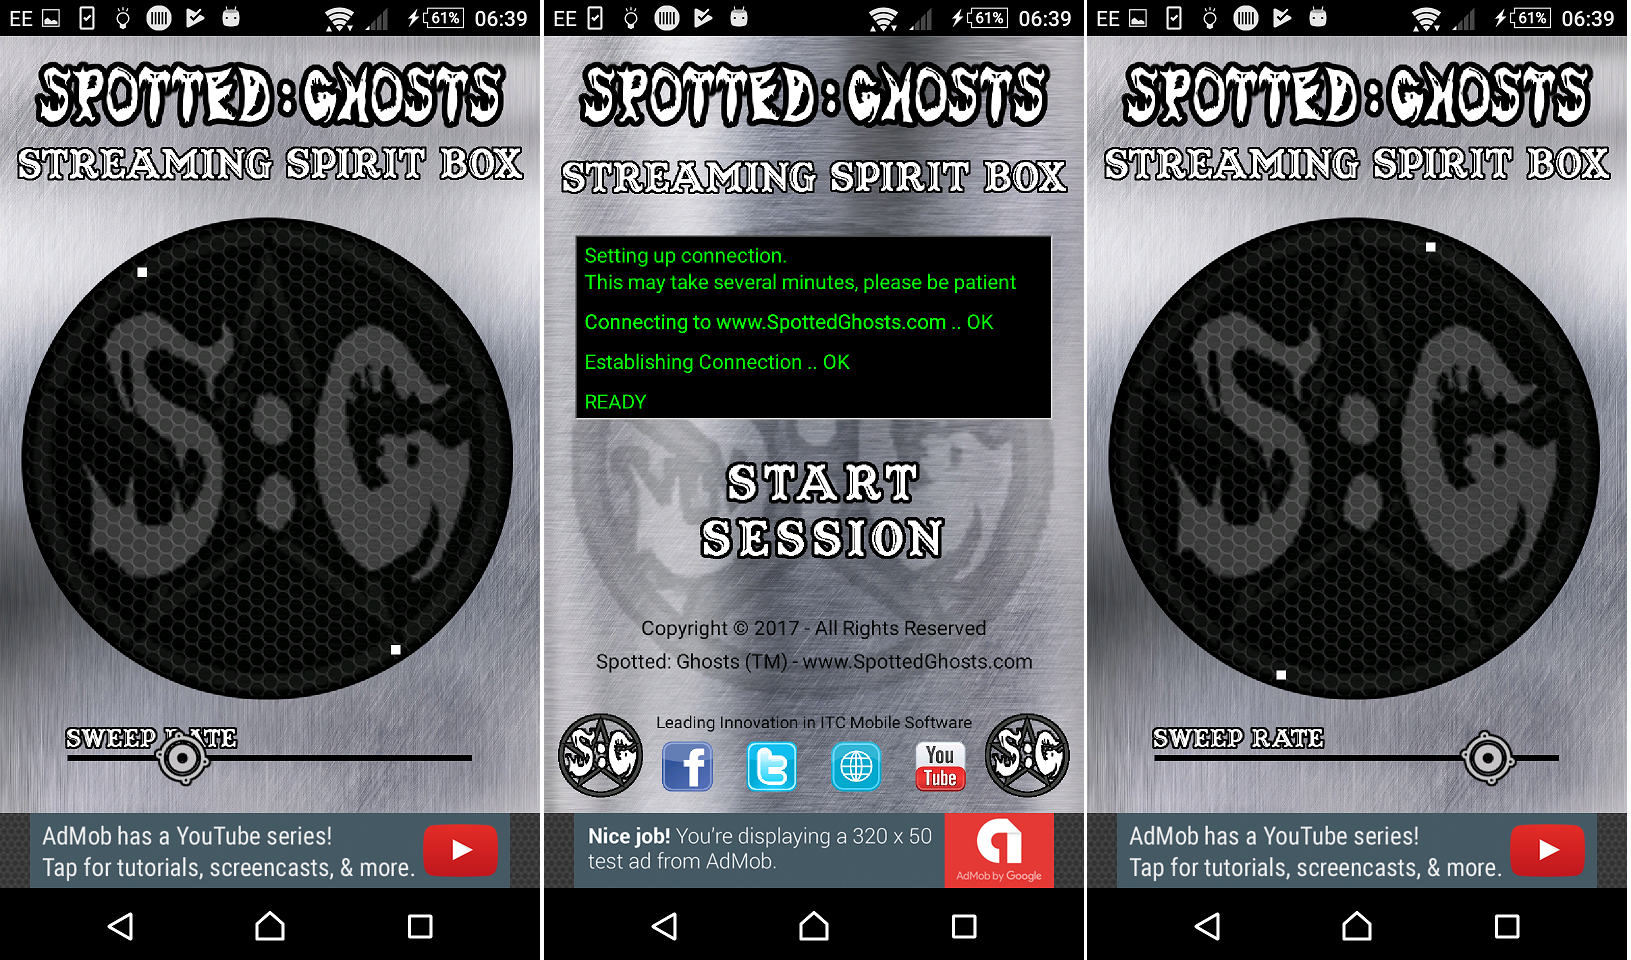 Spotted: Ghosts :: ITC Research and Parnormal Investigation